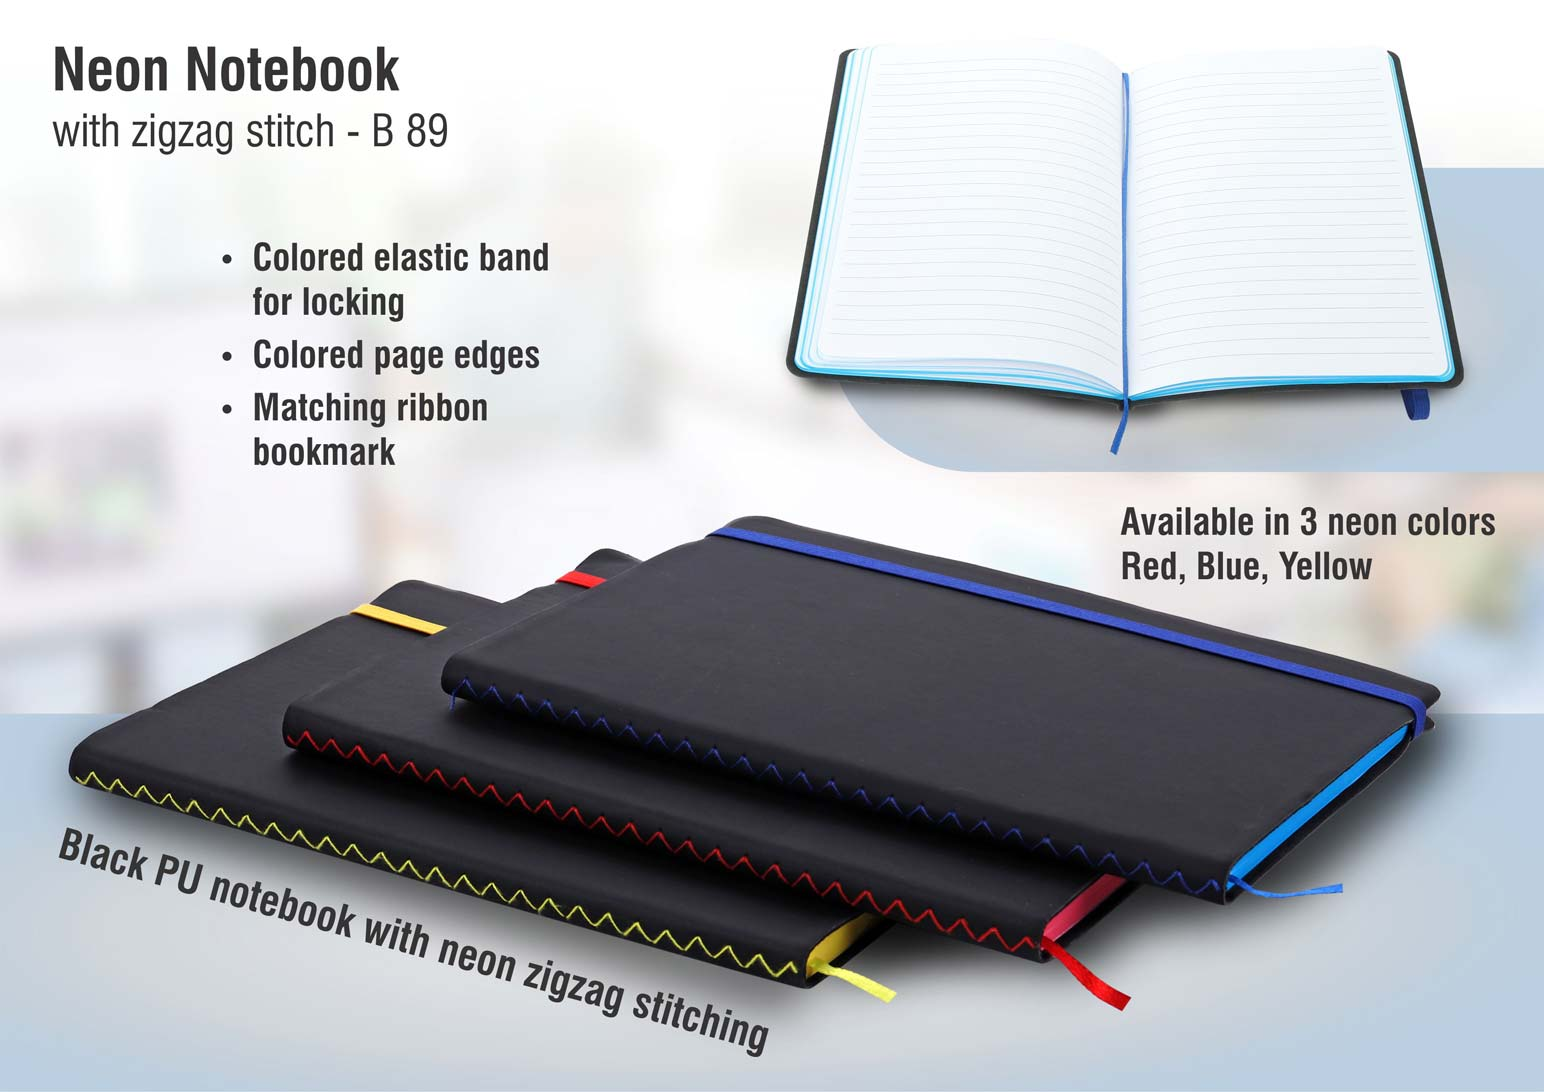 B89 - Neon notebook with zigzag stitch